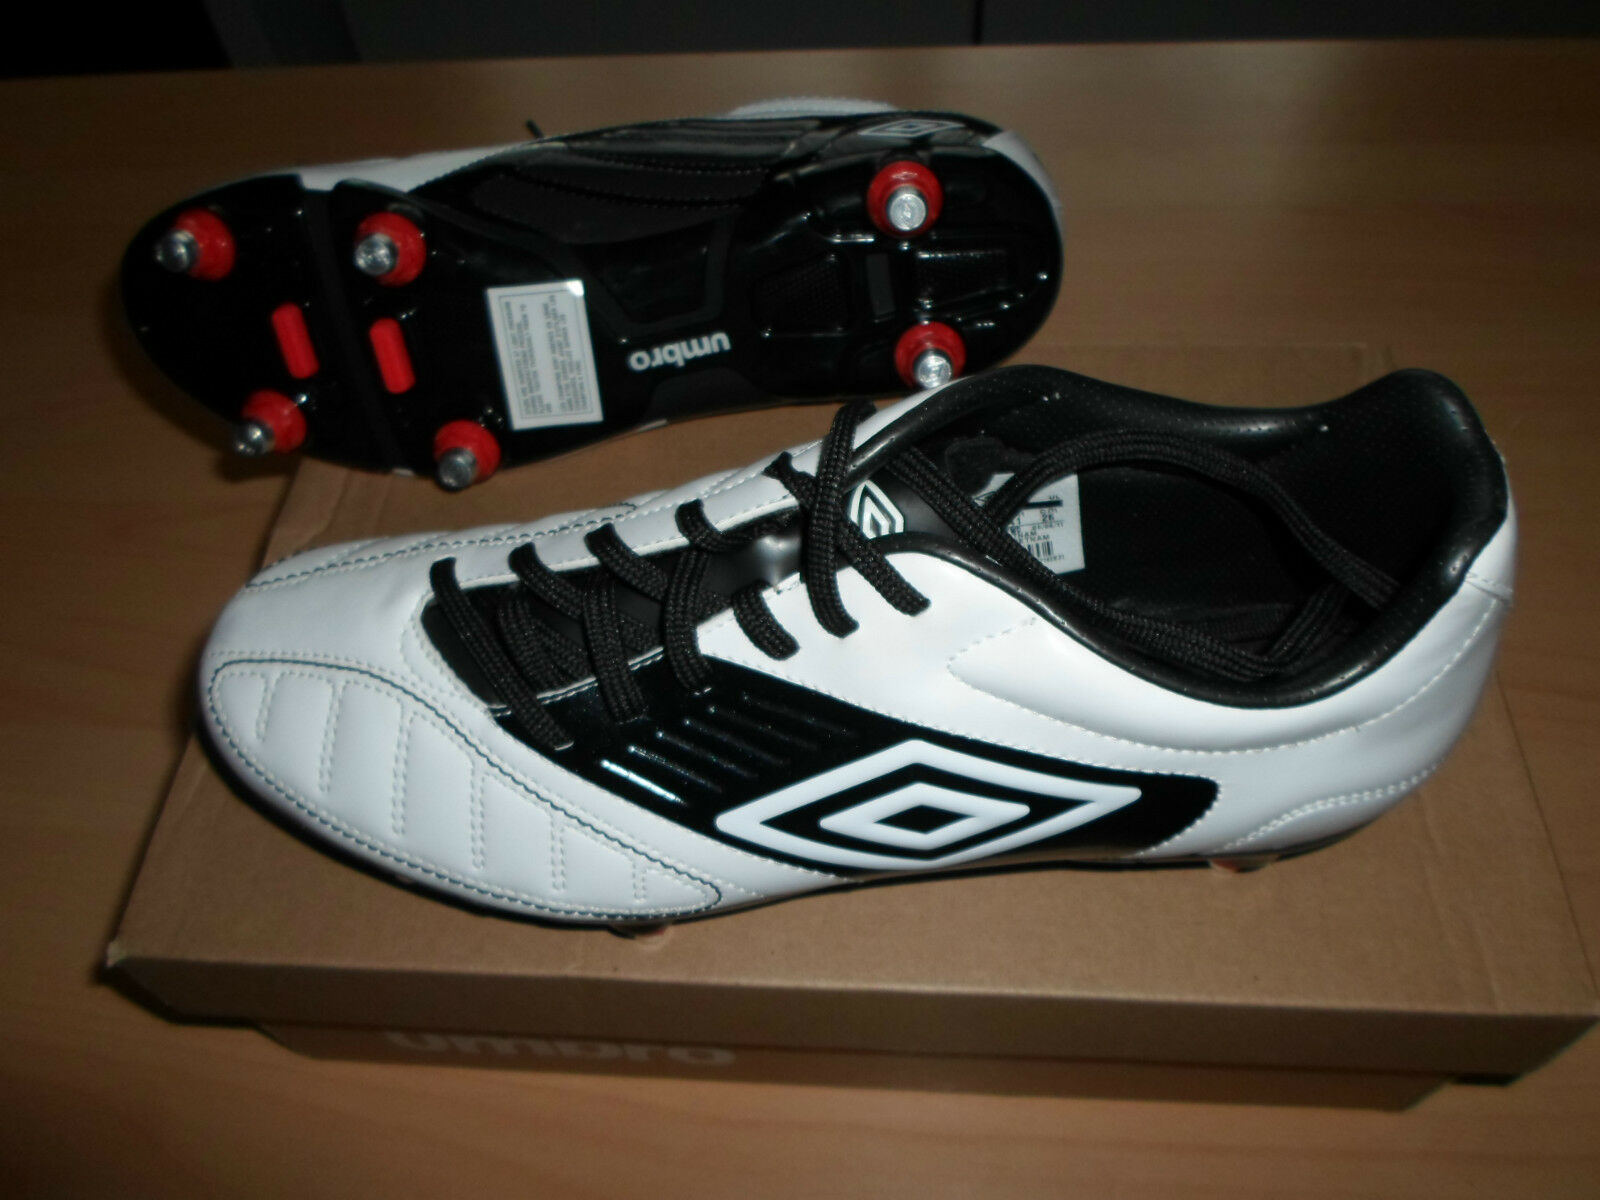 UMBRO GEOM CUP CUP CUP SG T 41 NEUVES 92e288